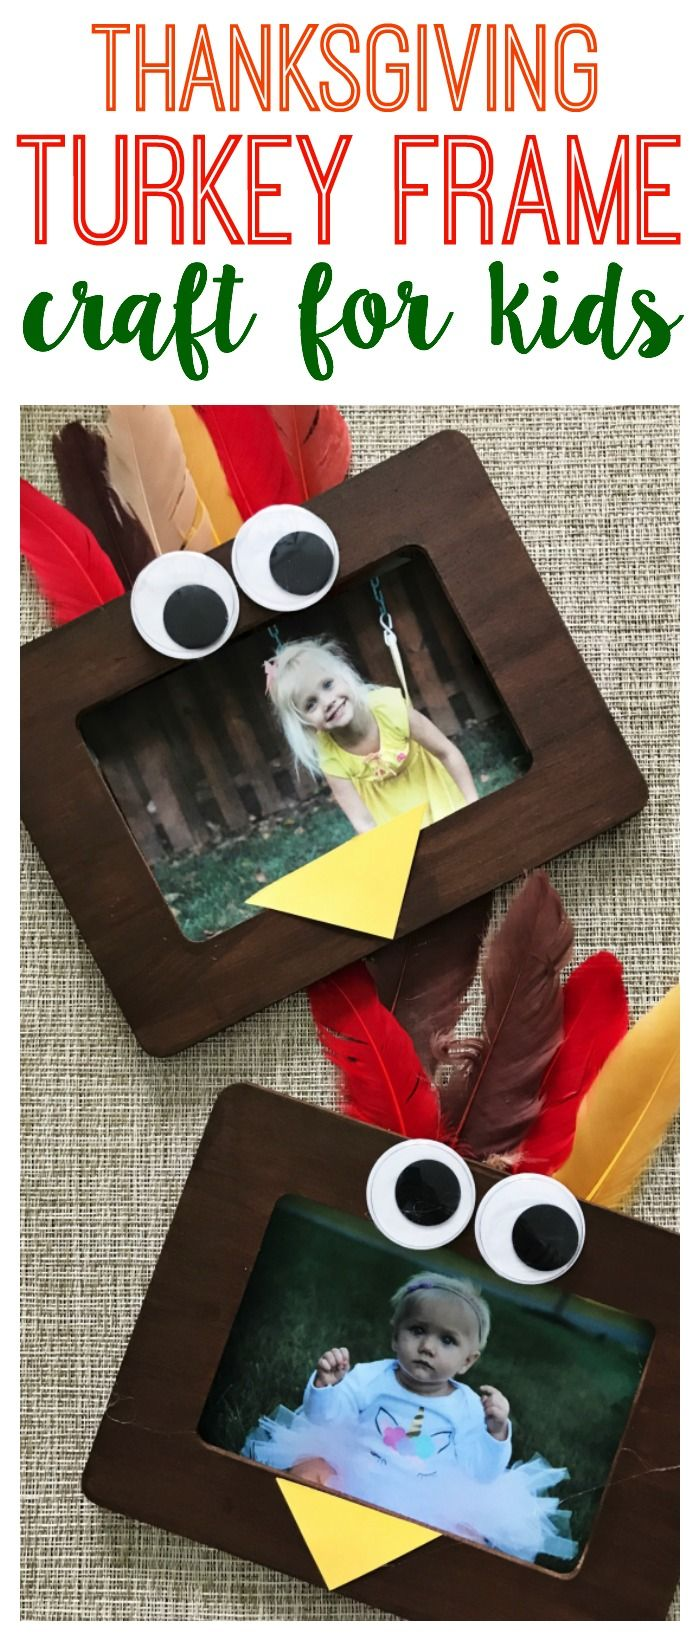 A Turkey Frame Craft - The Chirping Moms #thanksgivingcrafts